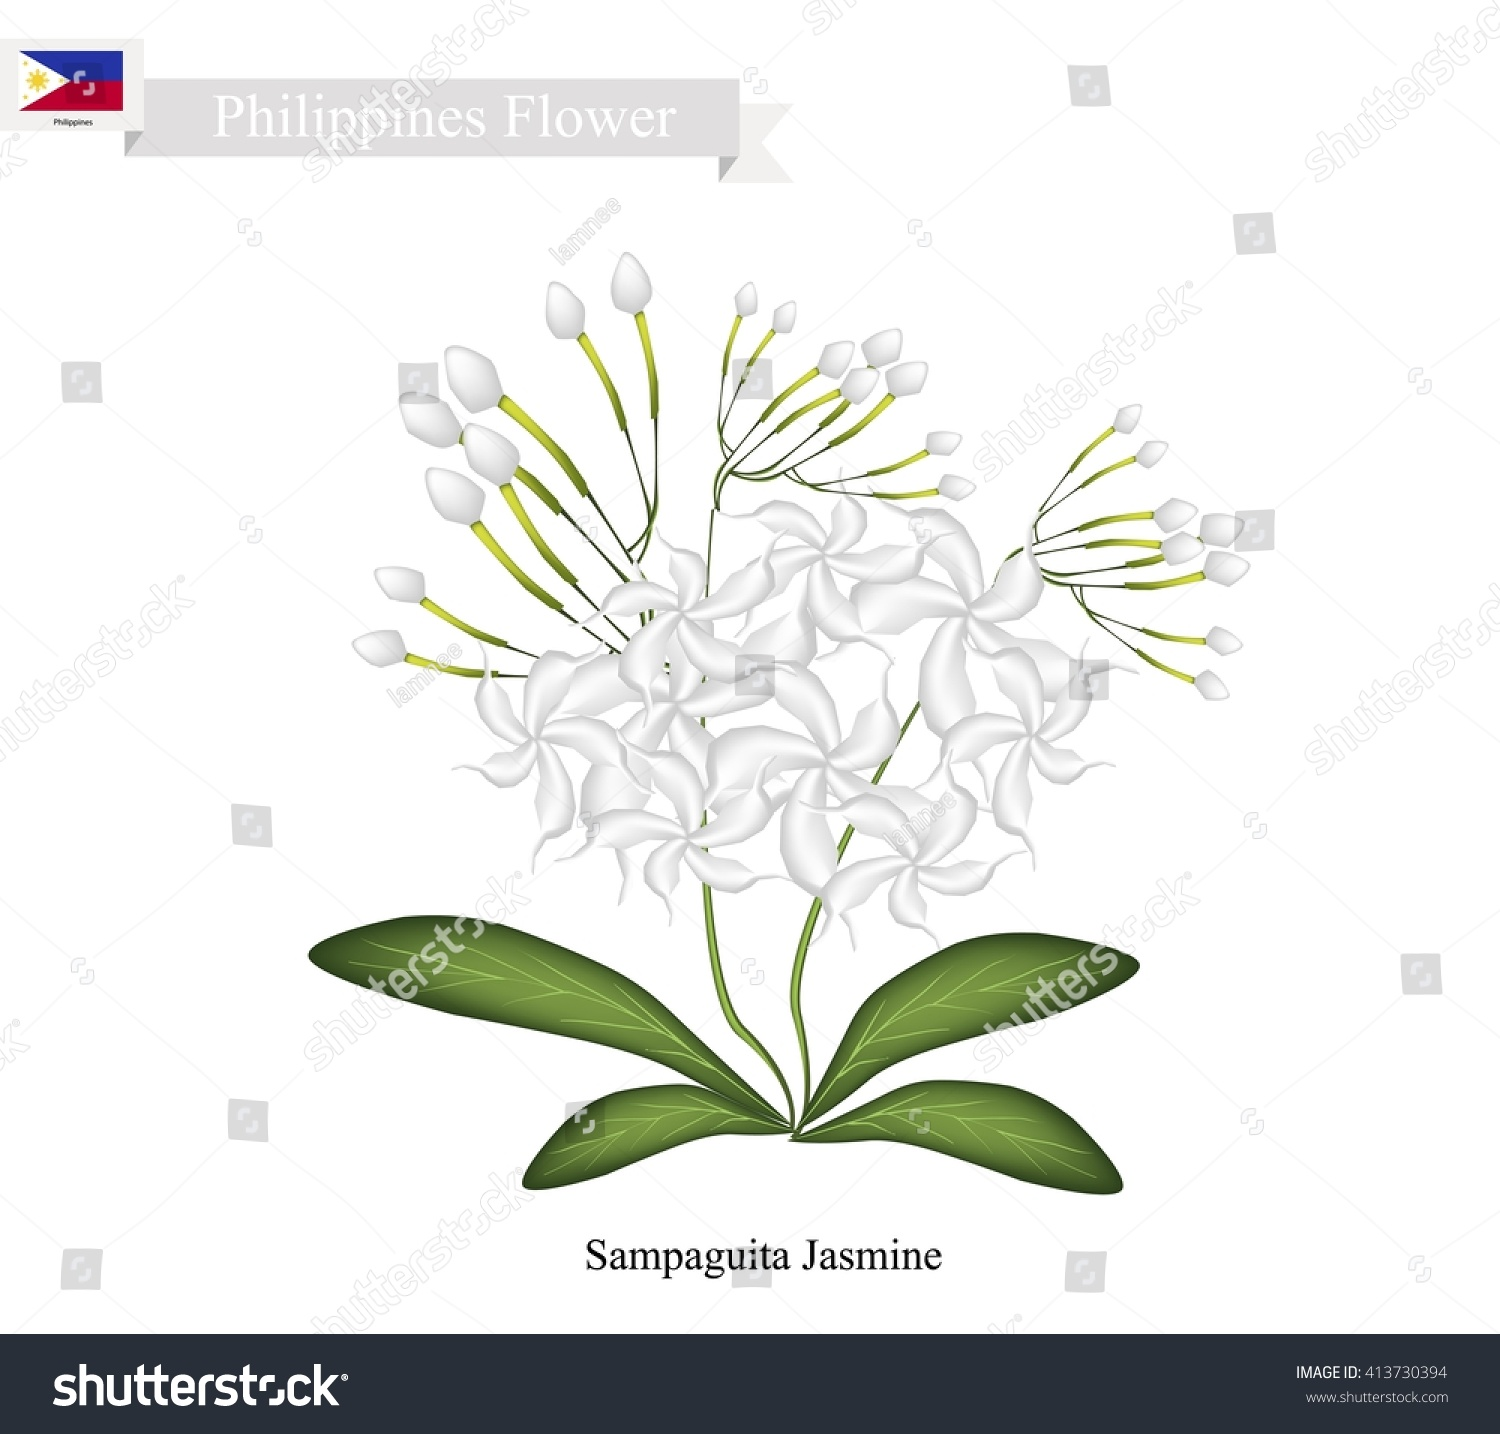 Philippines flower illustration sampaguita jasmine arabian stock philippines flower illustration of sampaguita jasmine or arabian jasmine the national flower of philippines izmirmasajfo